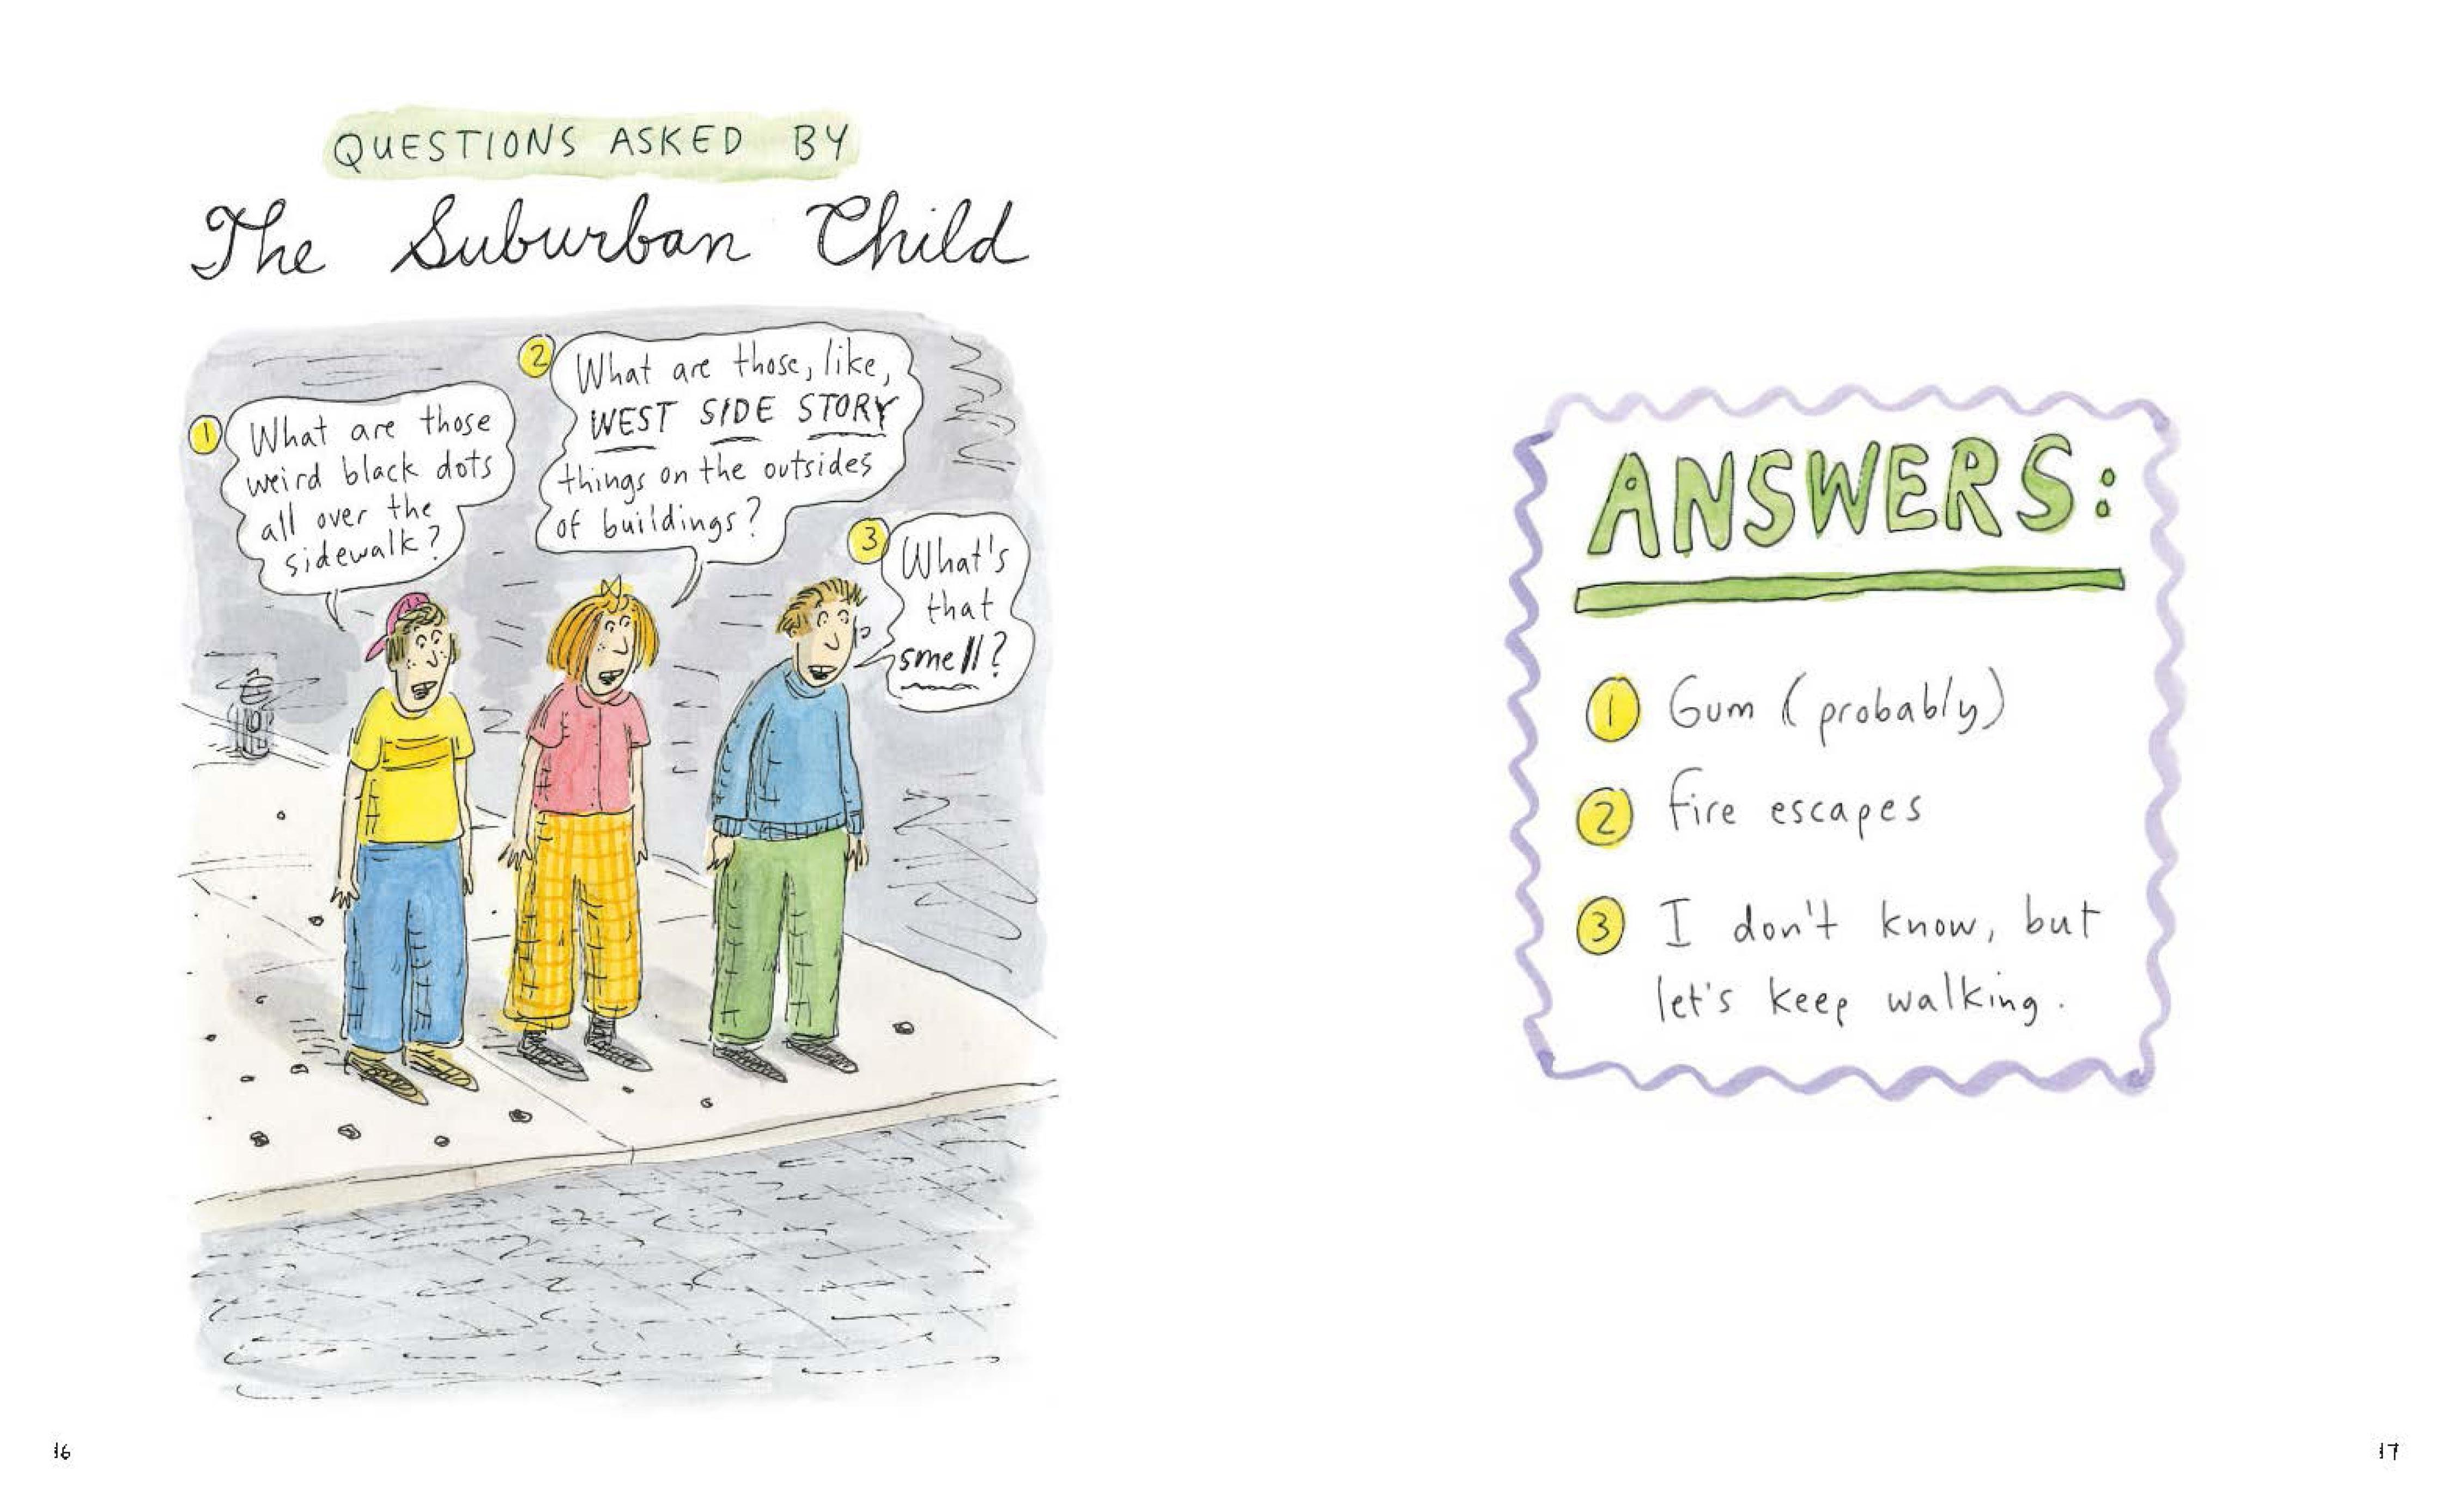 Going into town a love letter to new york roz chast 9781620403211 from the publisher fandeluxe Image collections